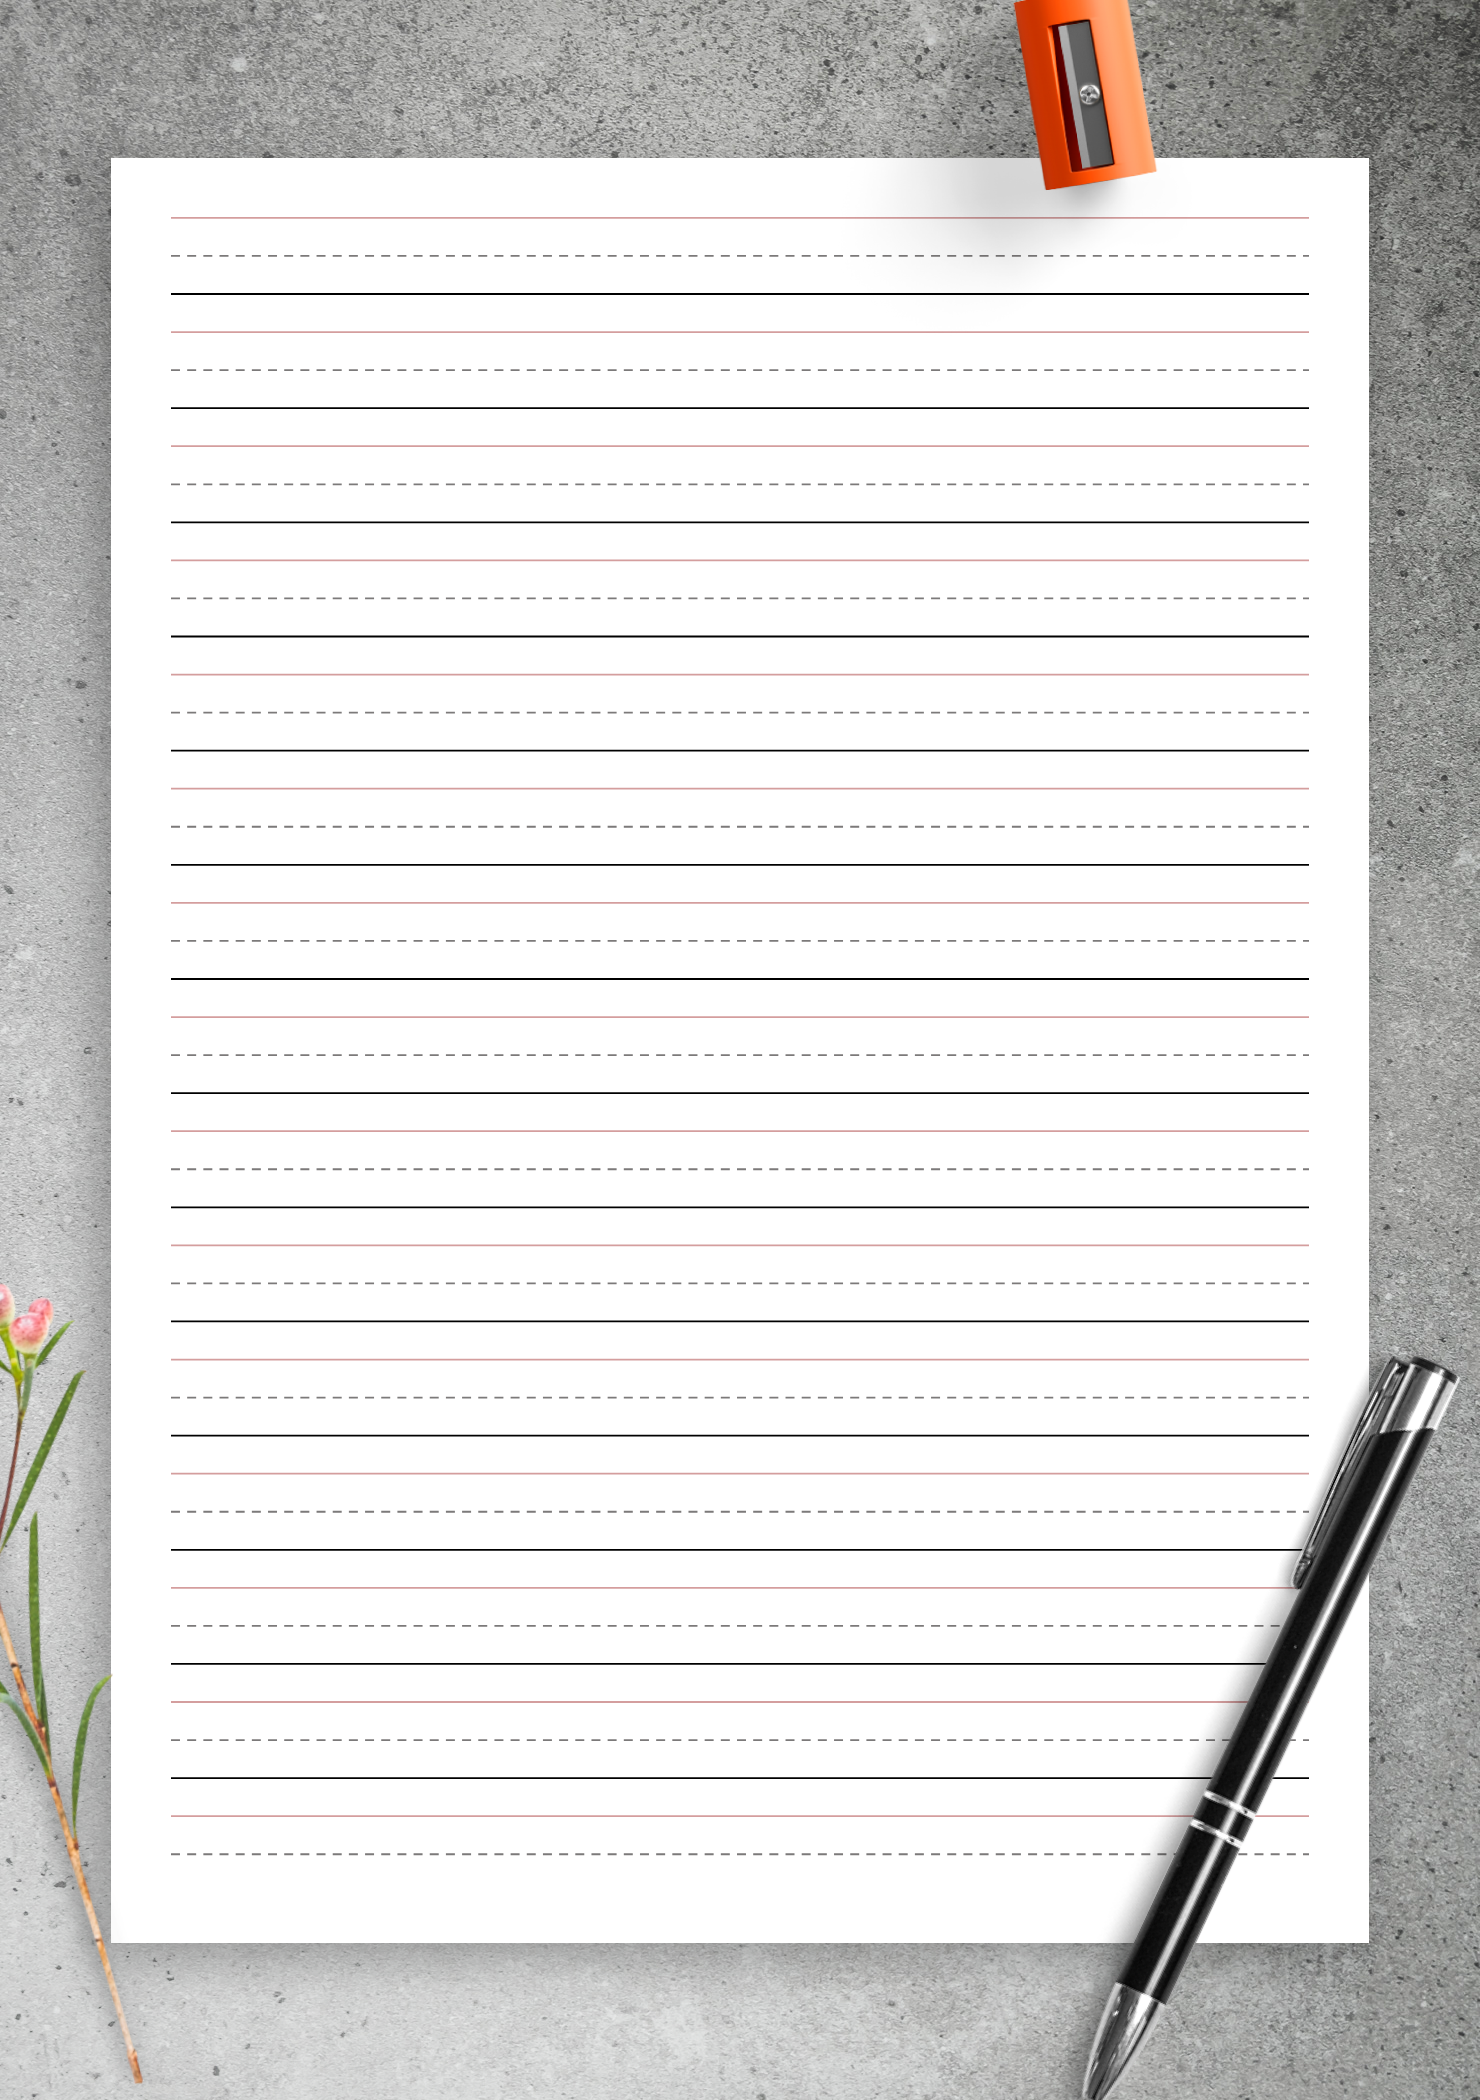 Printable Lined Writing Paper Pdf